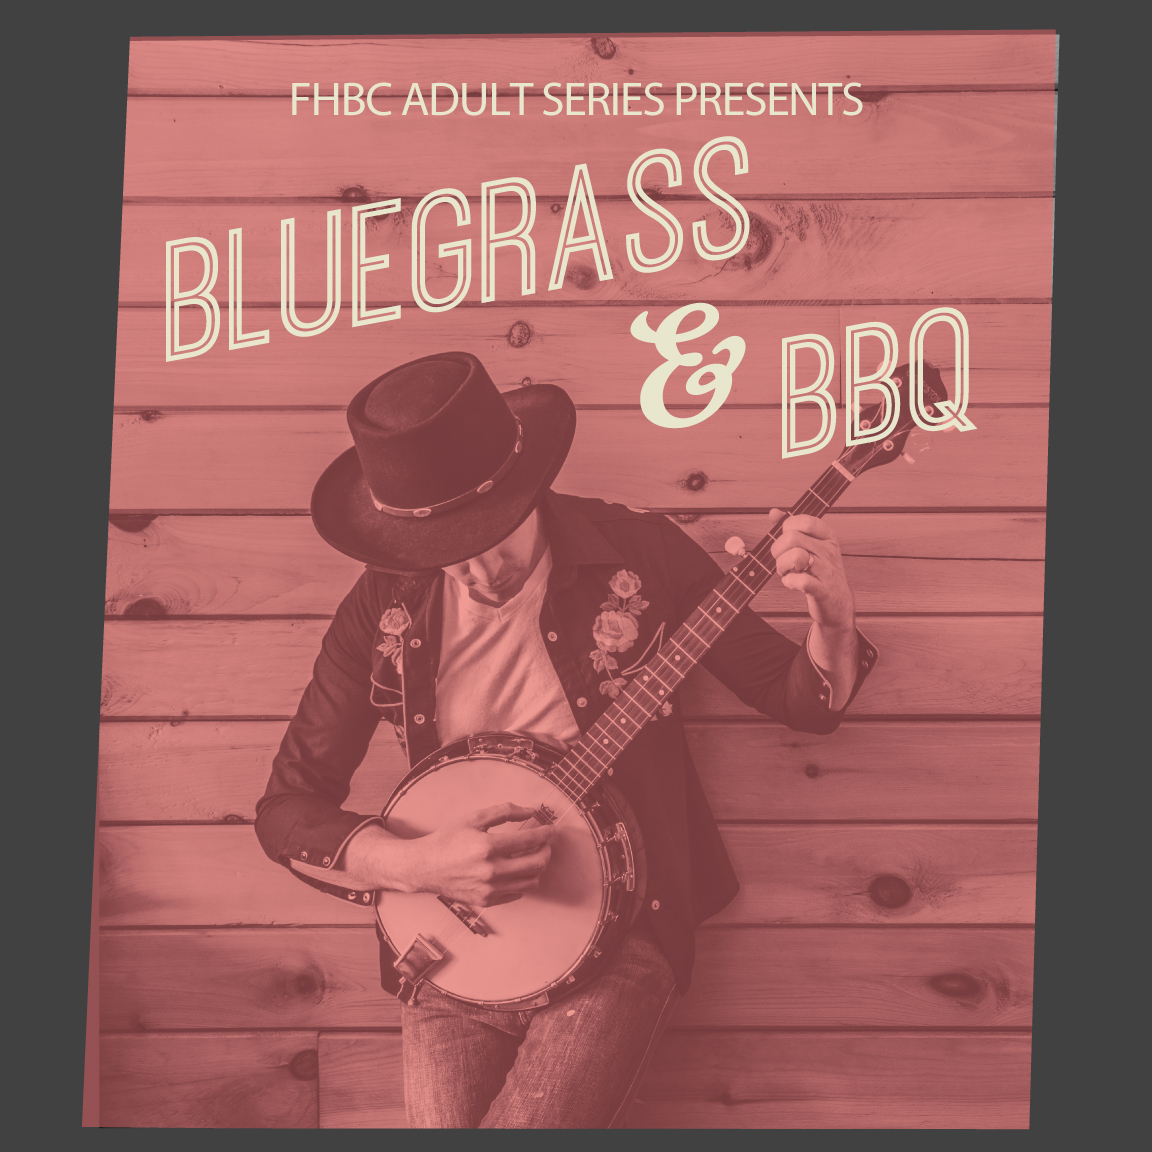 Calling at adults- join us on 4/21 at 6:00 pm for a time of fellowship and fun for Bluegrass and BBQ. BBQ will be prepared by Handsome Ray Edwards, with Fire House Potatoes, green beans, cole slaw, and wonderful desserts by Melissa Griffith. Music will be presented by the Kudzu Blue Grass Band. Invite someone you know! RSVP at  foresthills.org/adults  or to 919.851.1191.